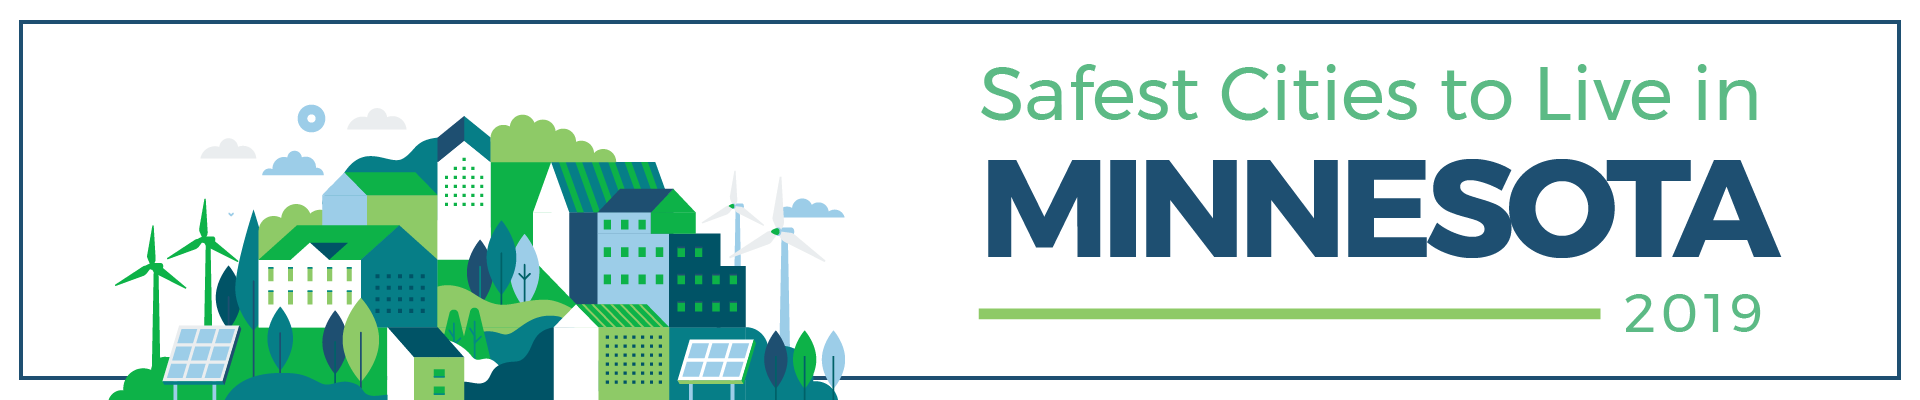 header - safest_cities_minnesota_2019